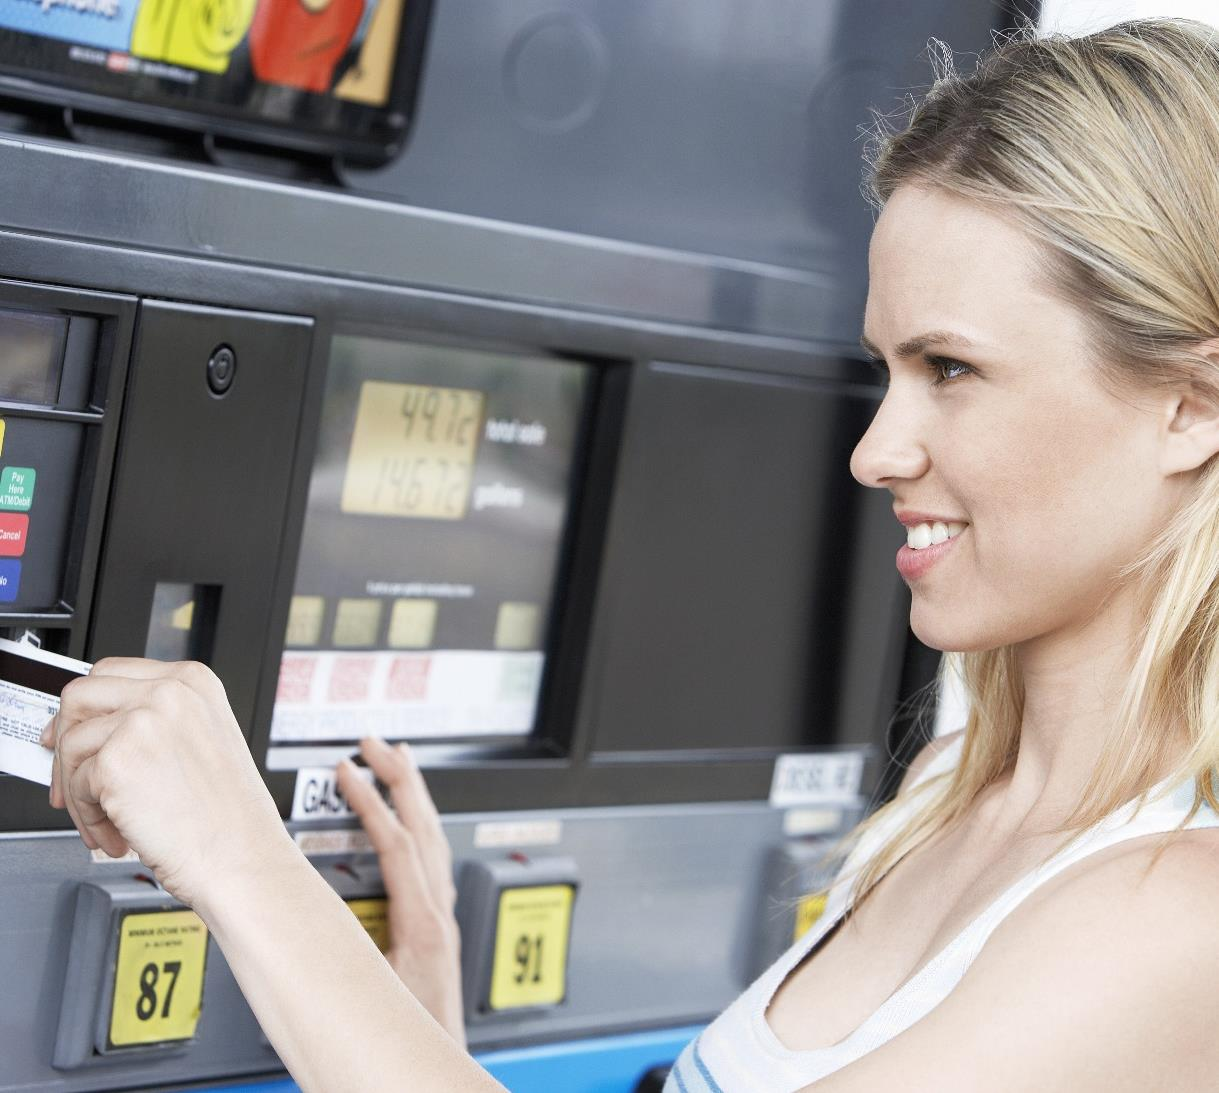 Gas Price Expectations Are Changing Consumer Spending Behavior MARCH 2015 Consumers expect gas prices to increase in the next three months.